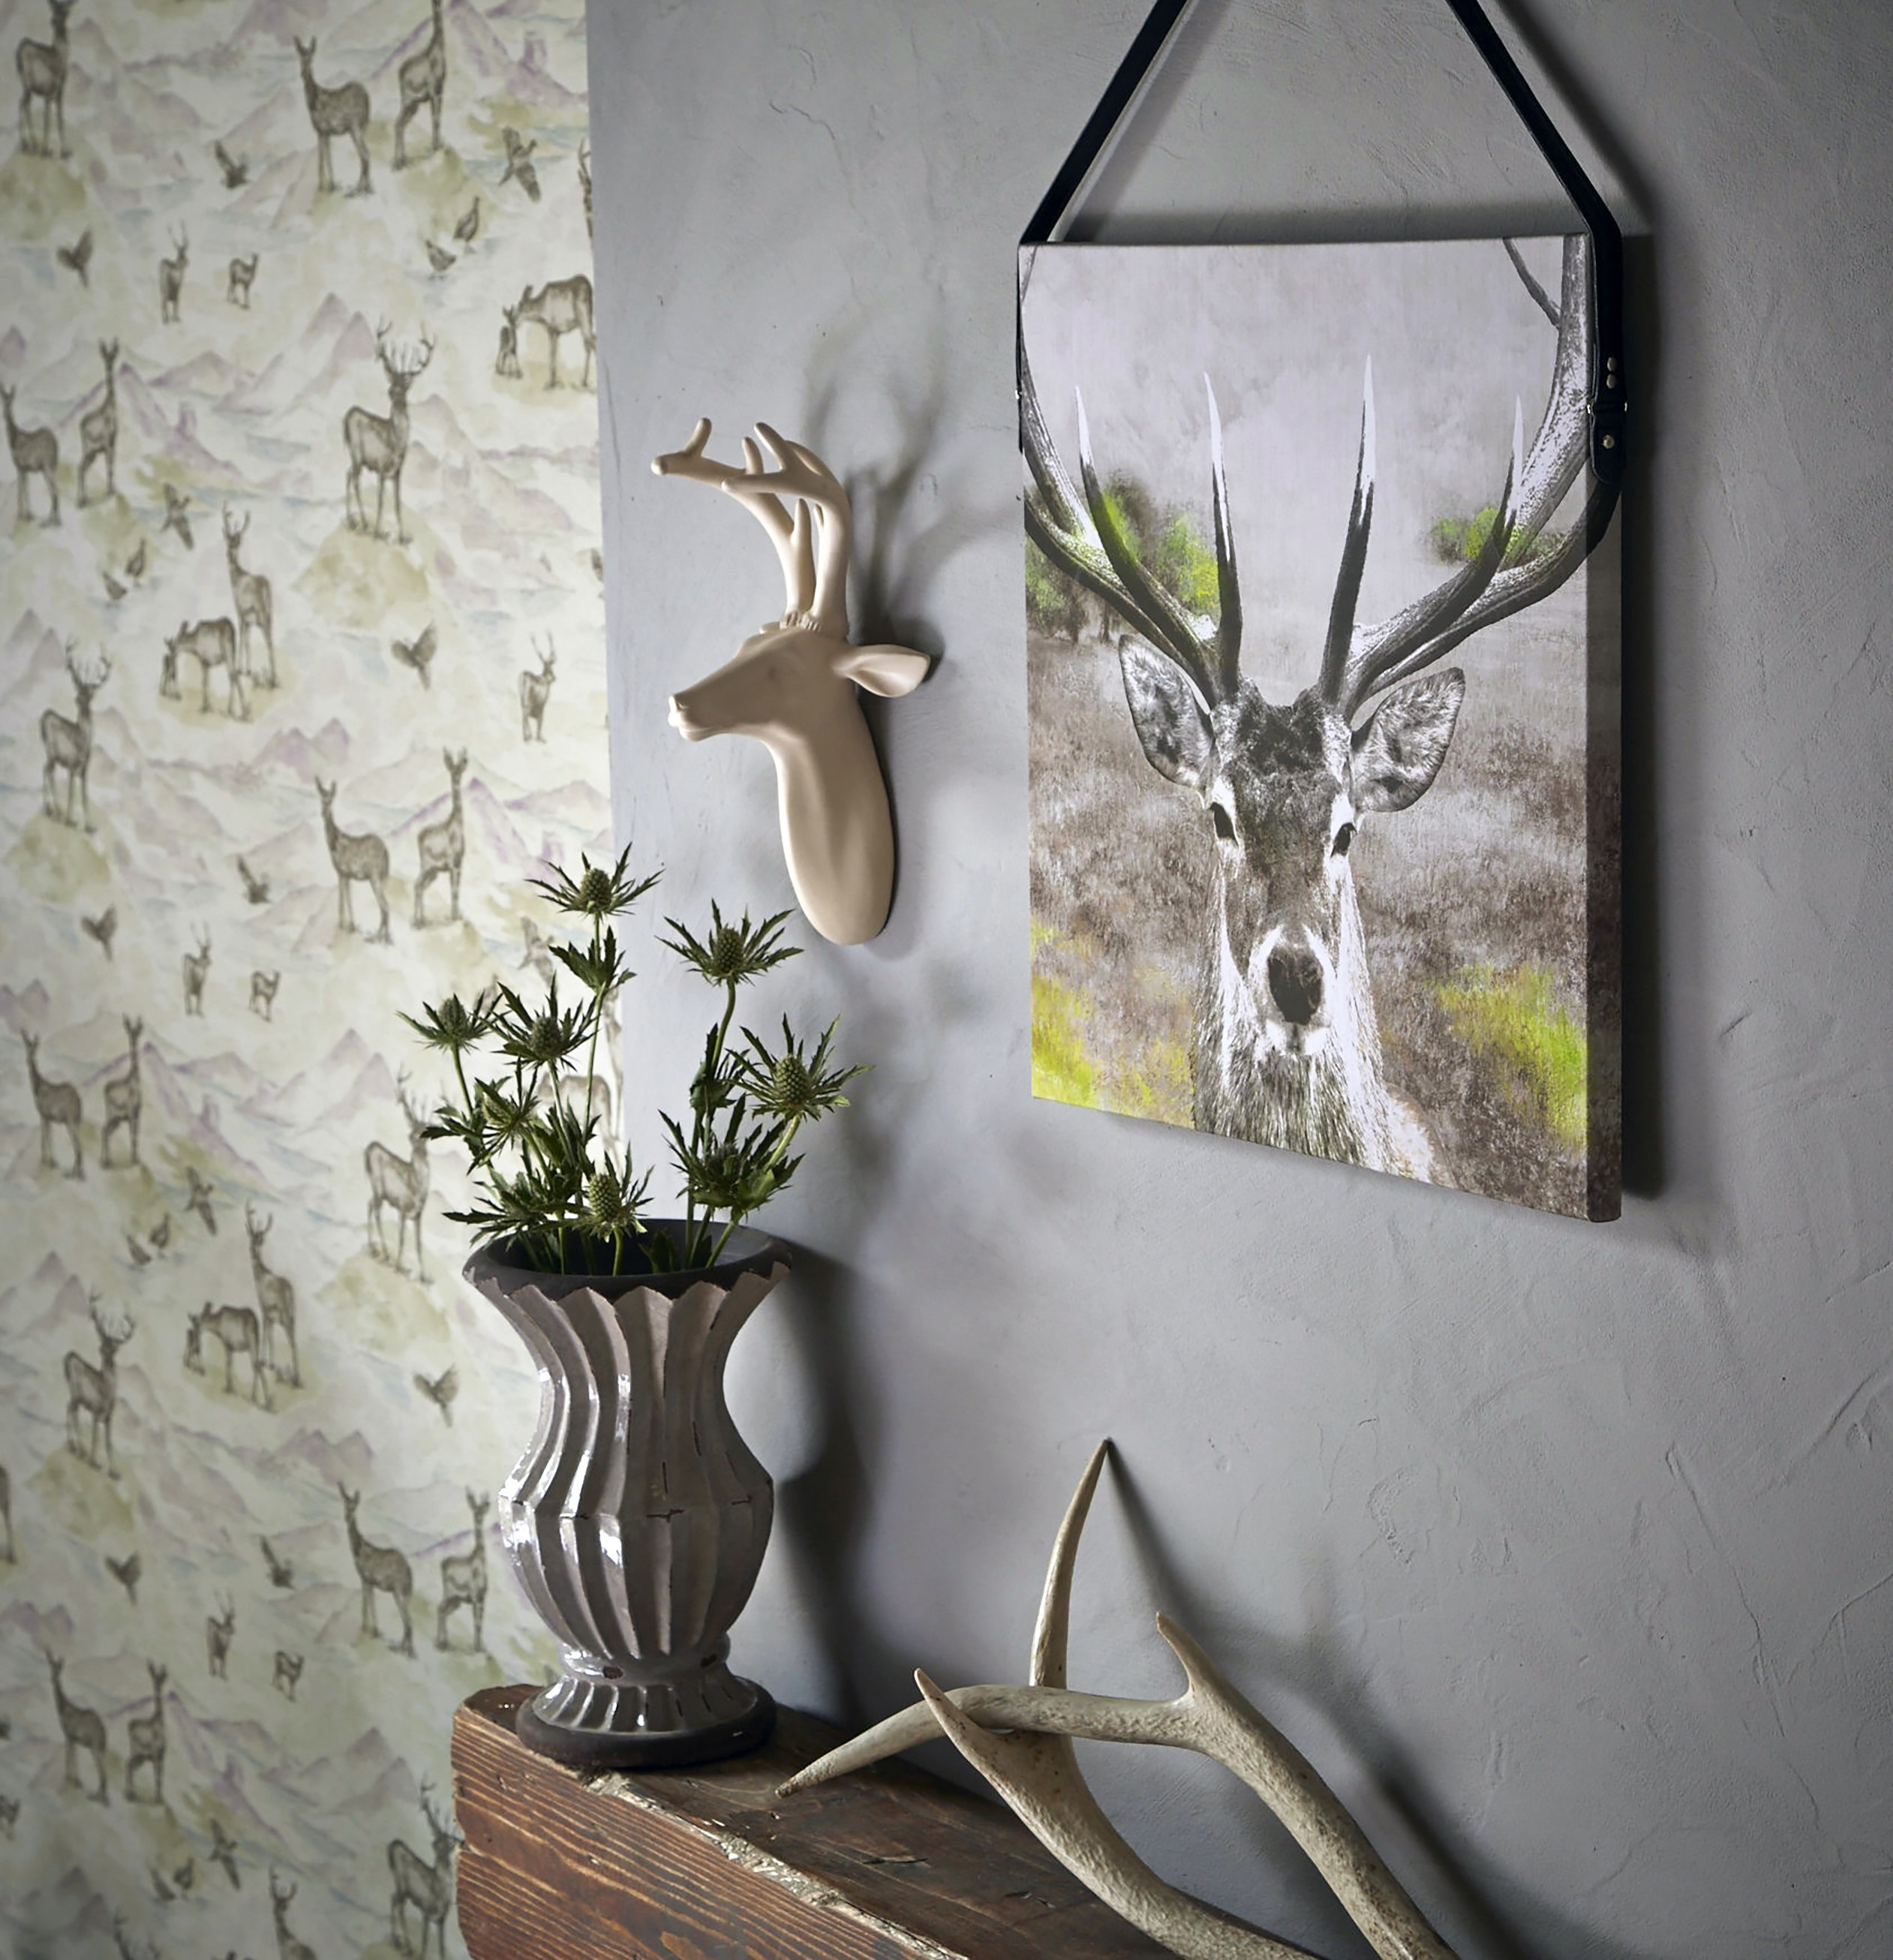 99 Items Mixed Lot - Brand New Interior Décor WallArt/Cushions, Approximate RRP £1149.63 - Image 5 of 5